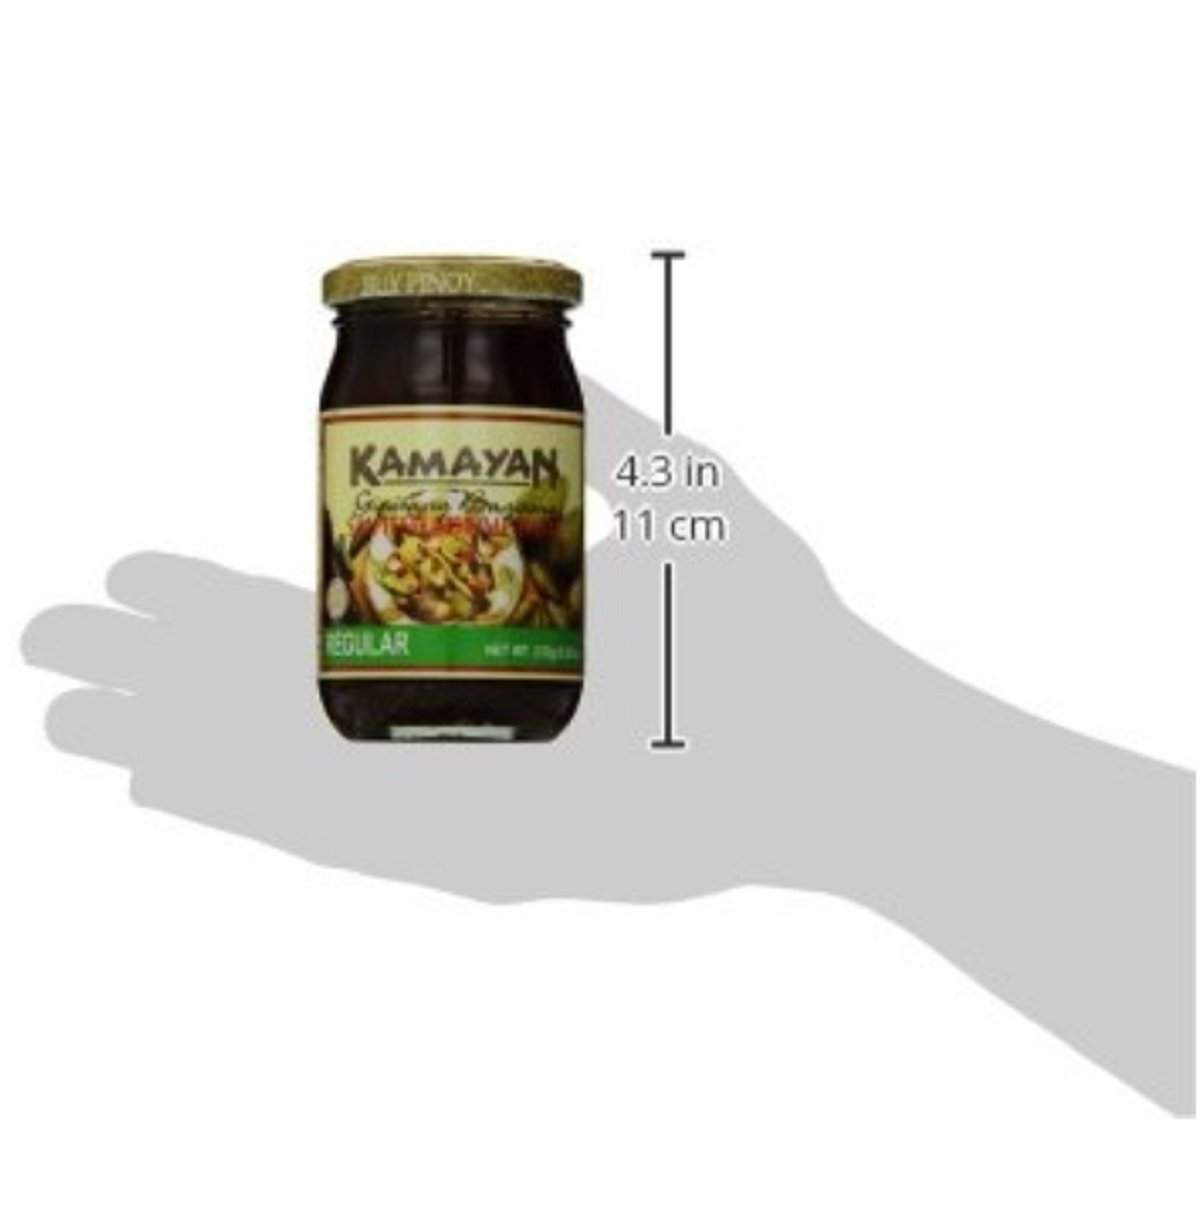 Kamayan Sauteed Shrimp Paste, Regular, 8.8 Ounce, 2 counts by World Food Mission (Image #4)